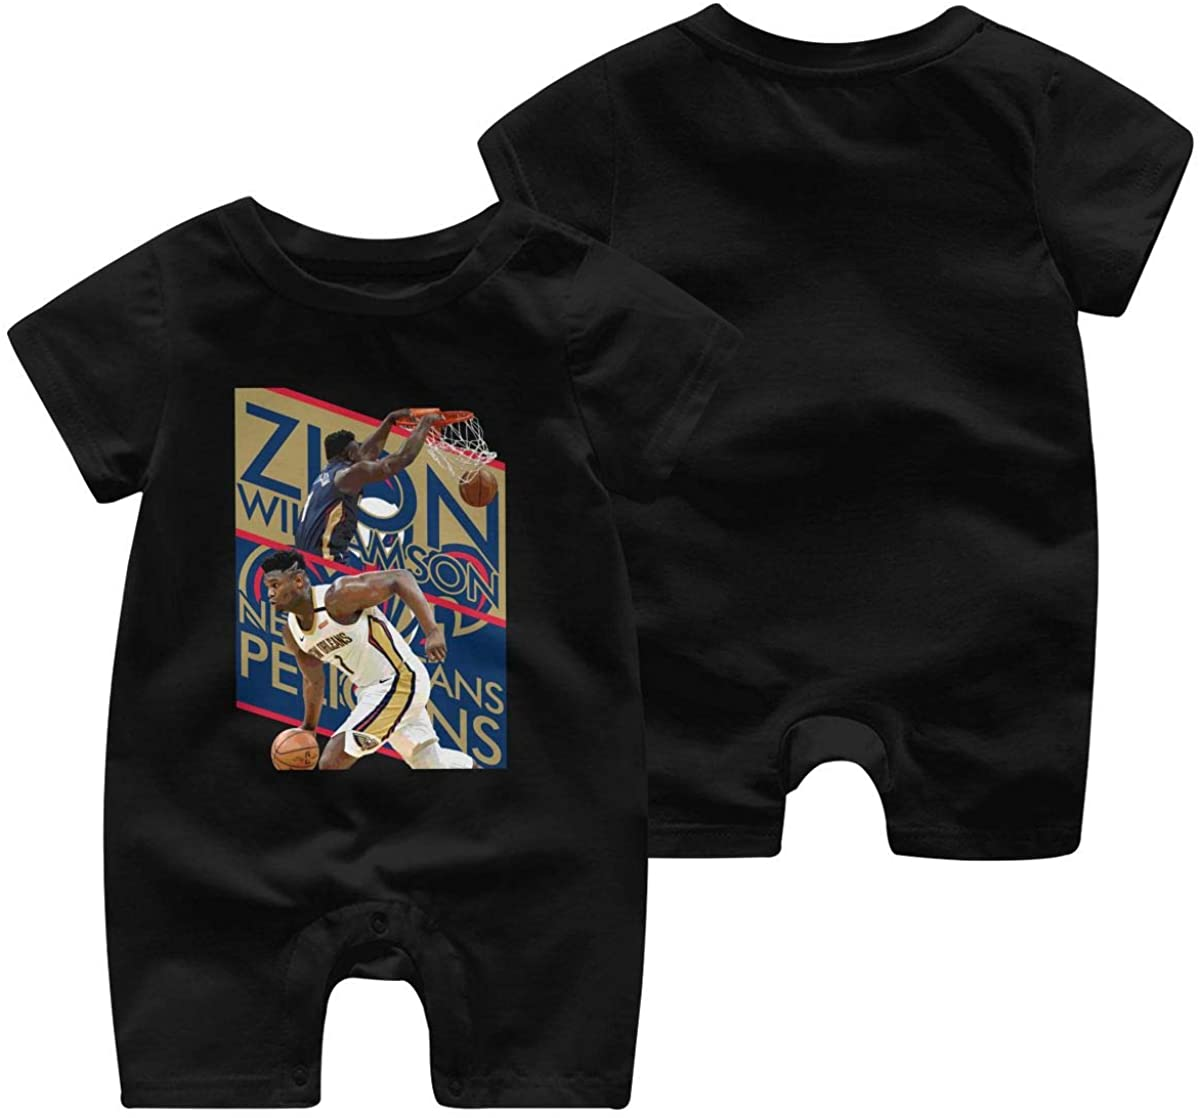 Duke Zion Baby Jumpsuit Infant Short Sleeve Kids Cotton Bodysuit